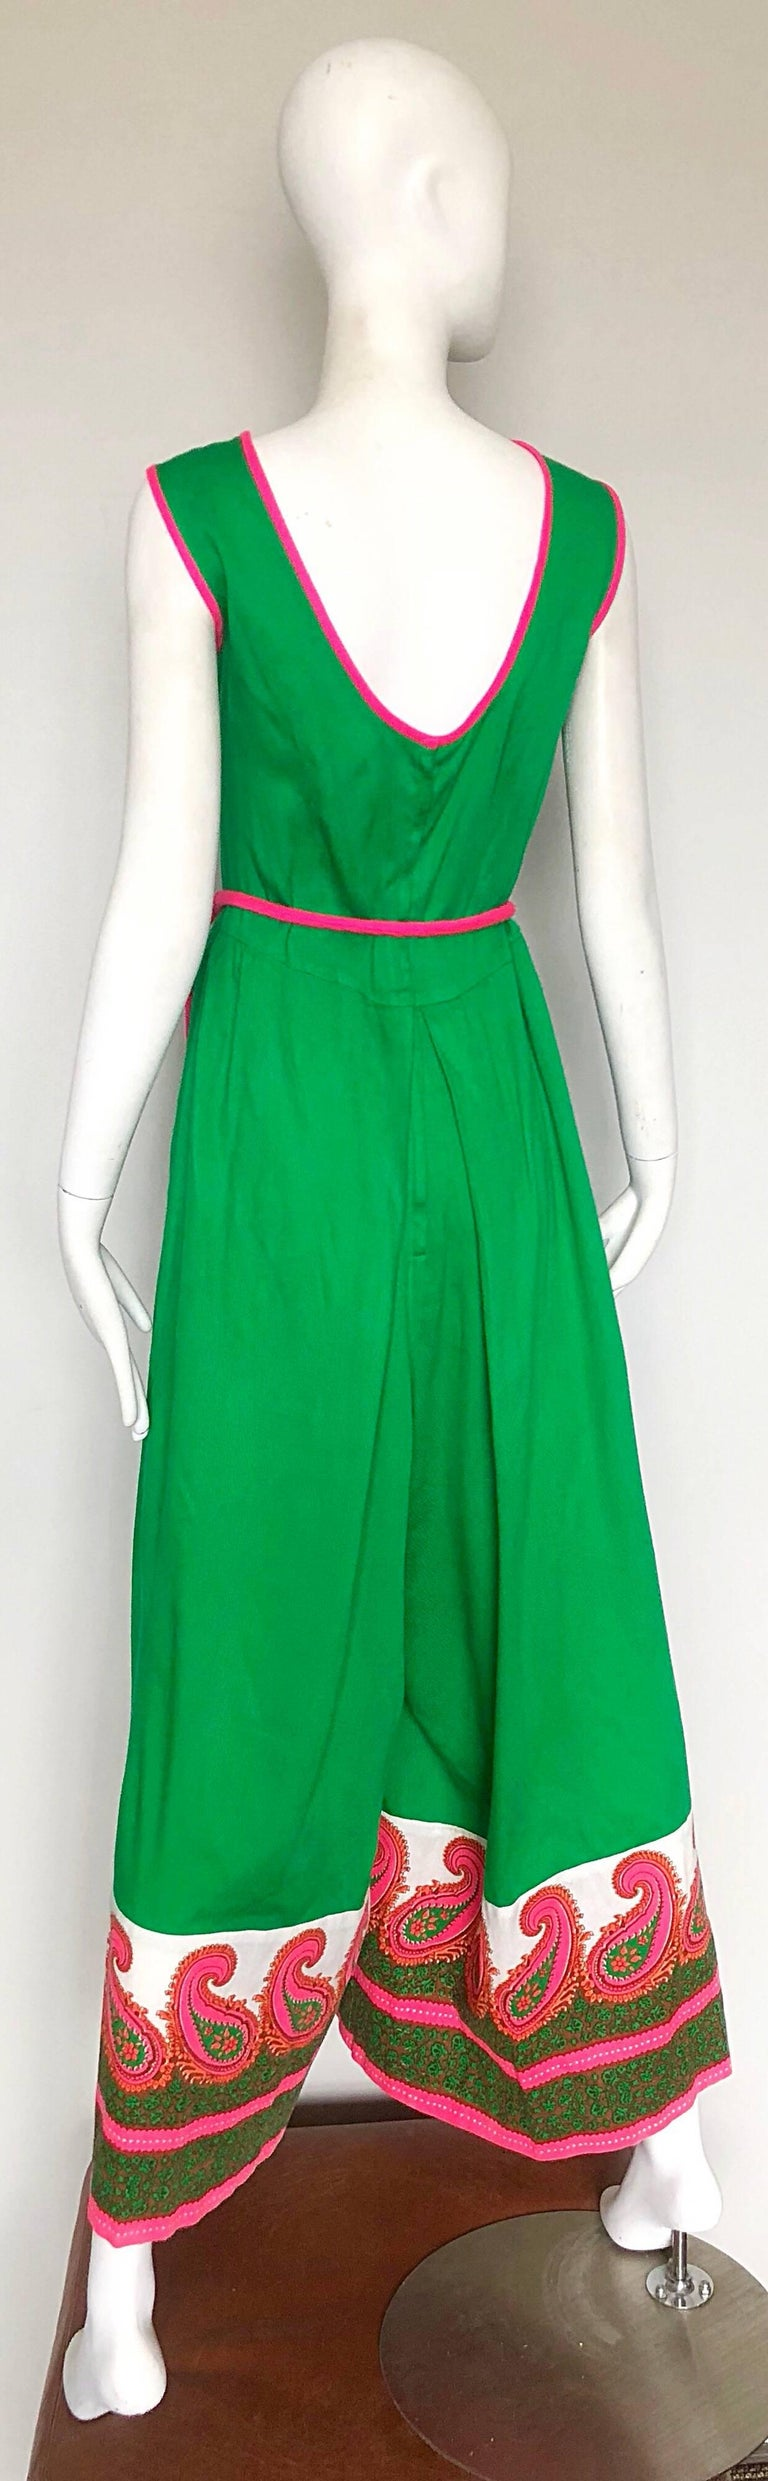 Alfred Shaheen 1960s Large Size Kelly Green + Pink Vintage 60s Palazzo Jumpsuit For Sale 2